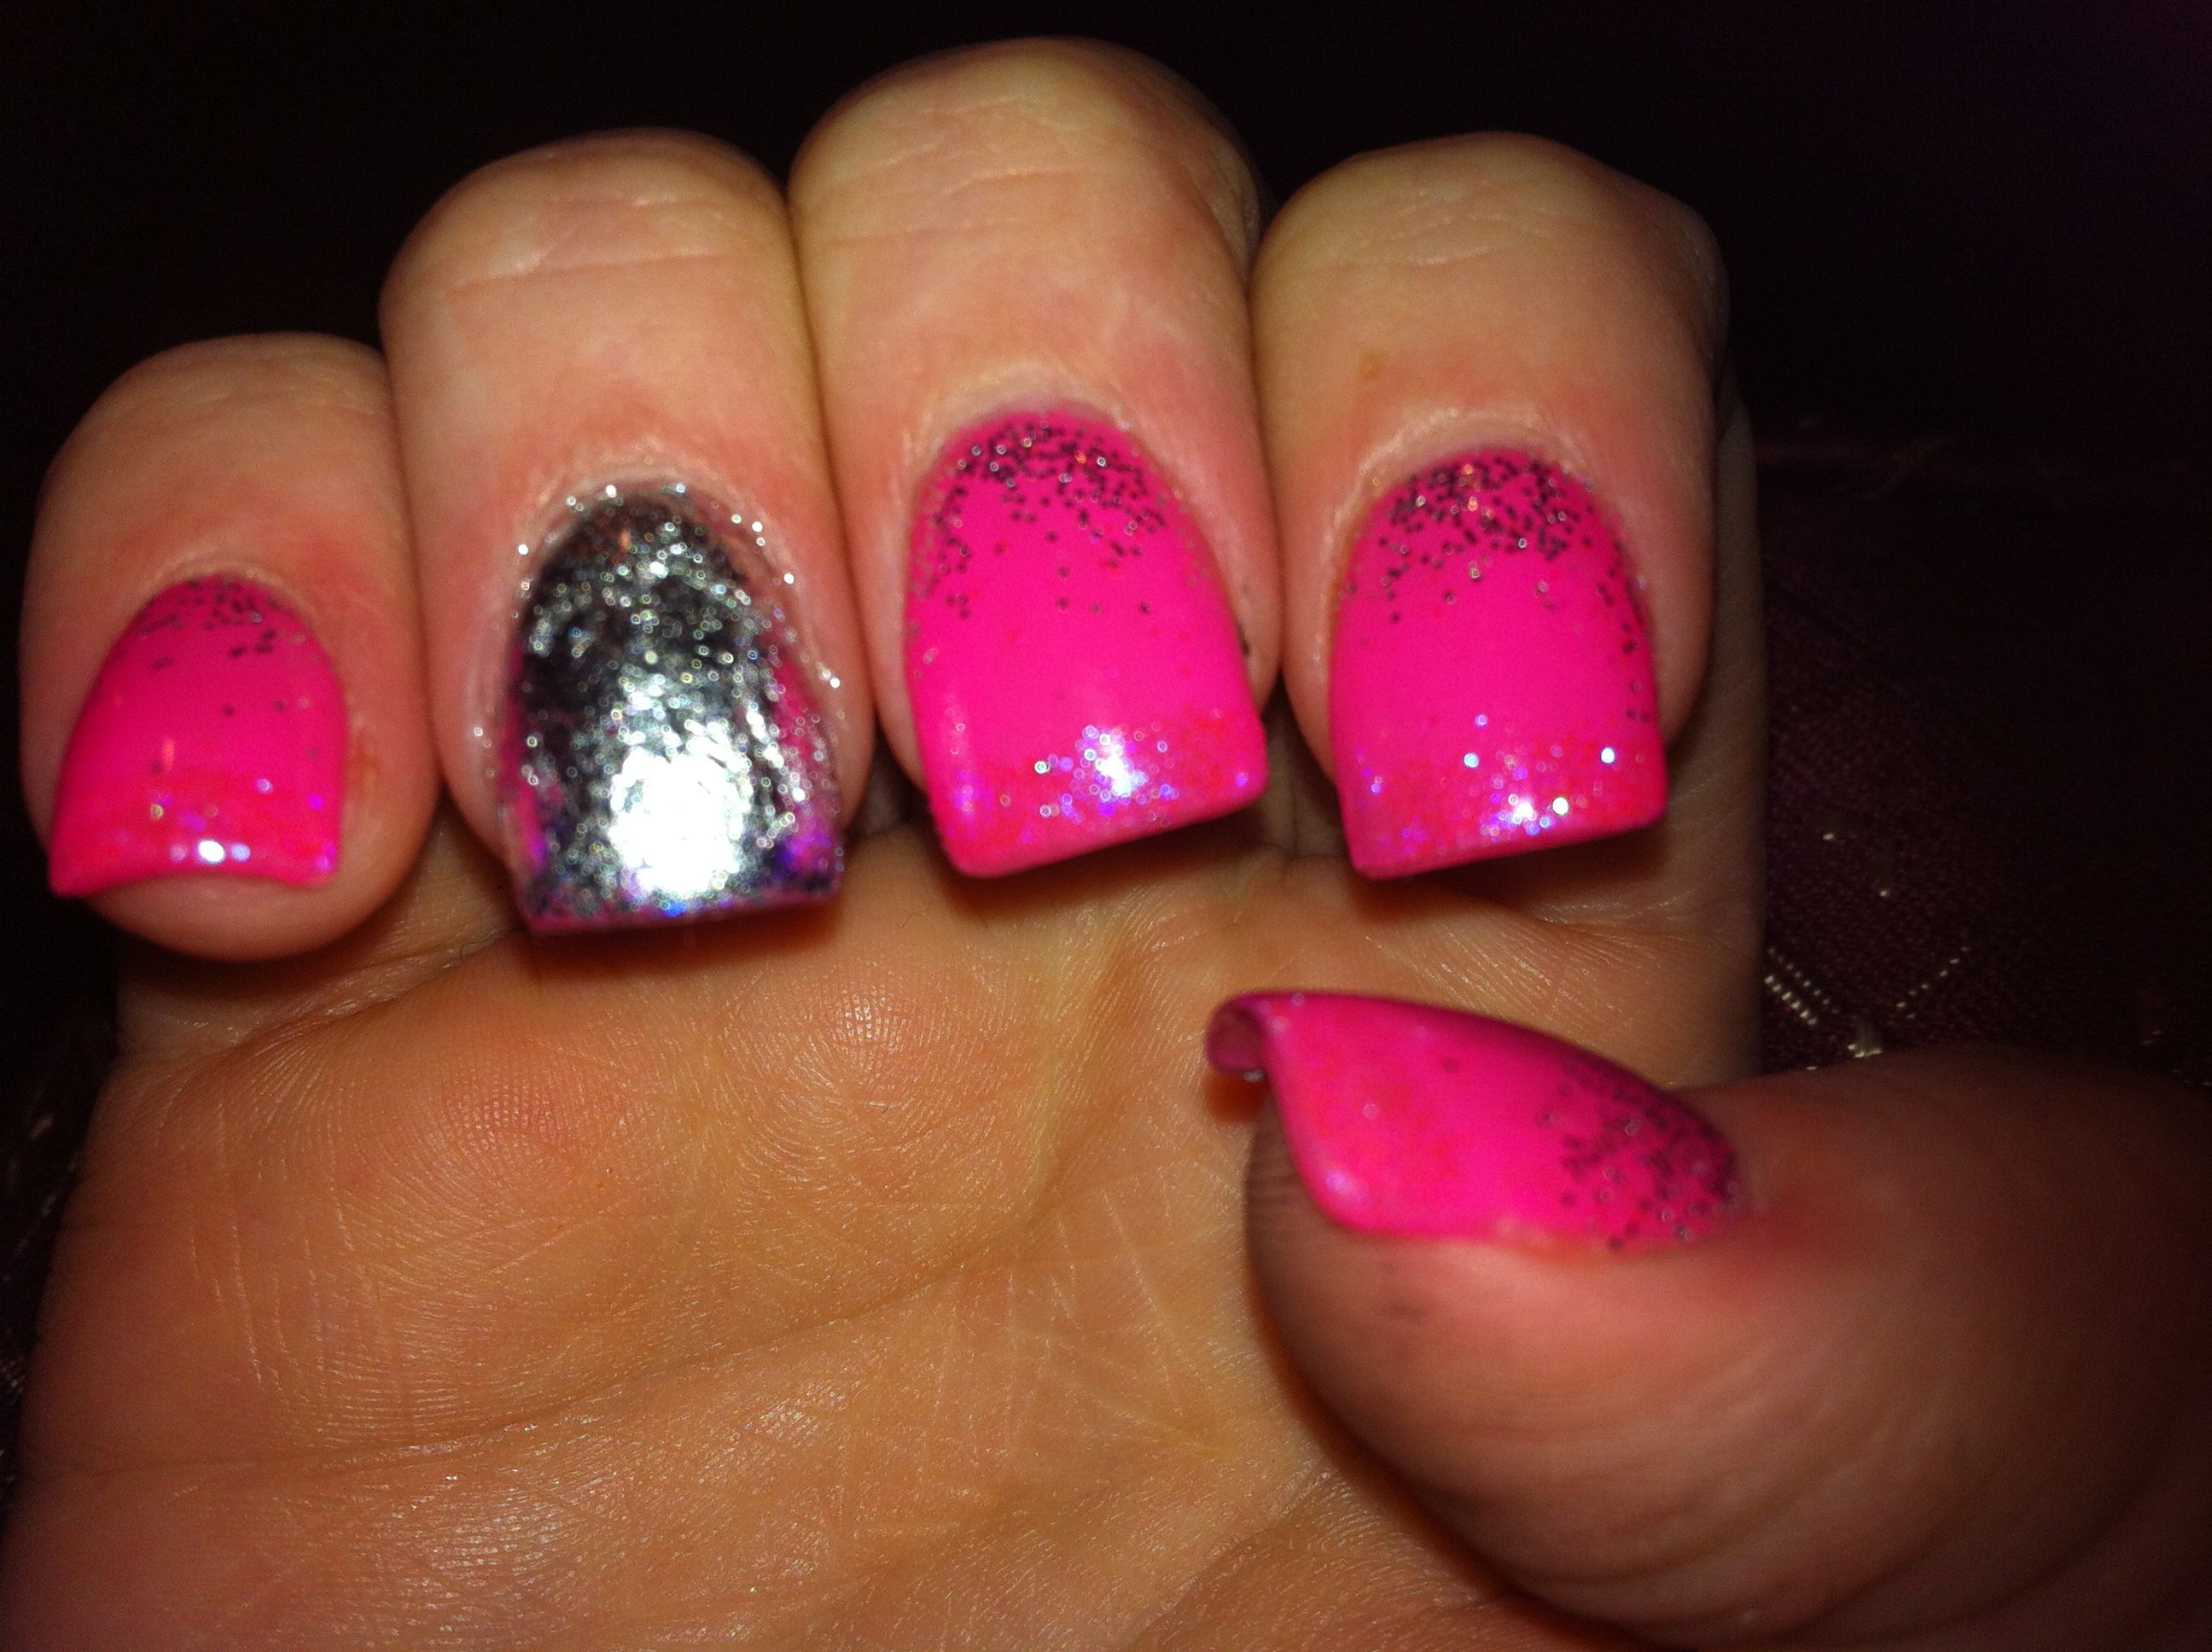 acrylic with gel polish and CND additives and foil | Nails I have ...